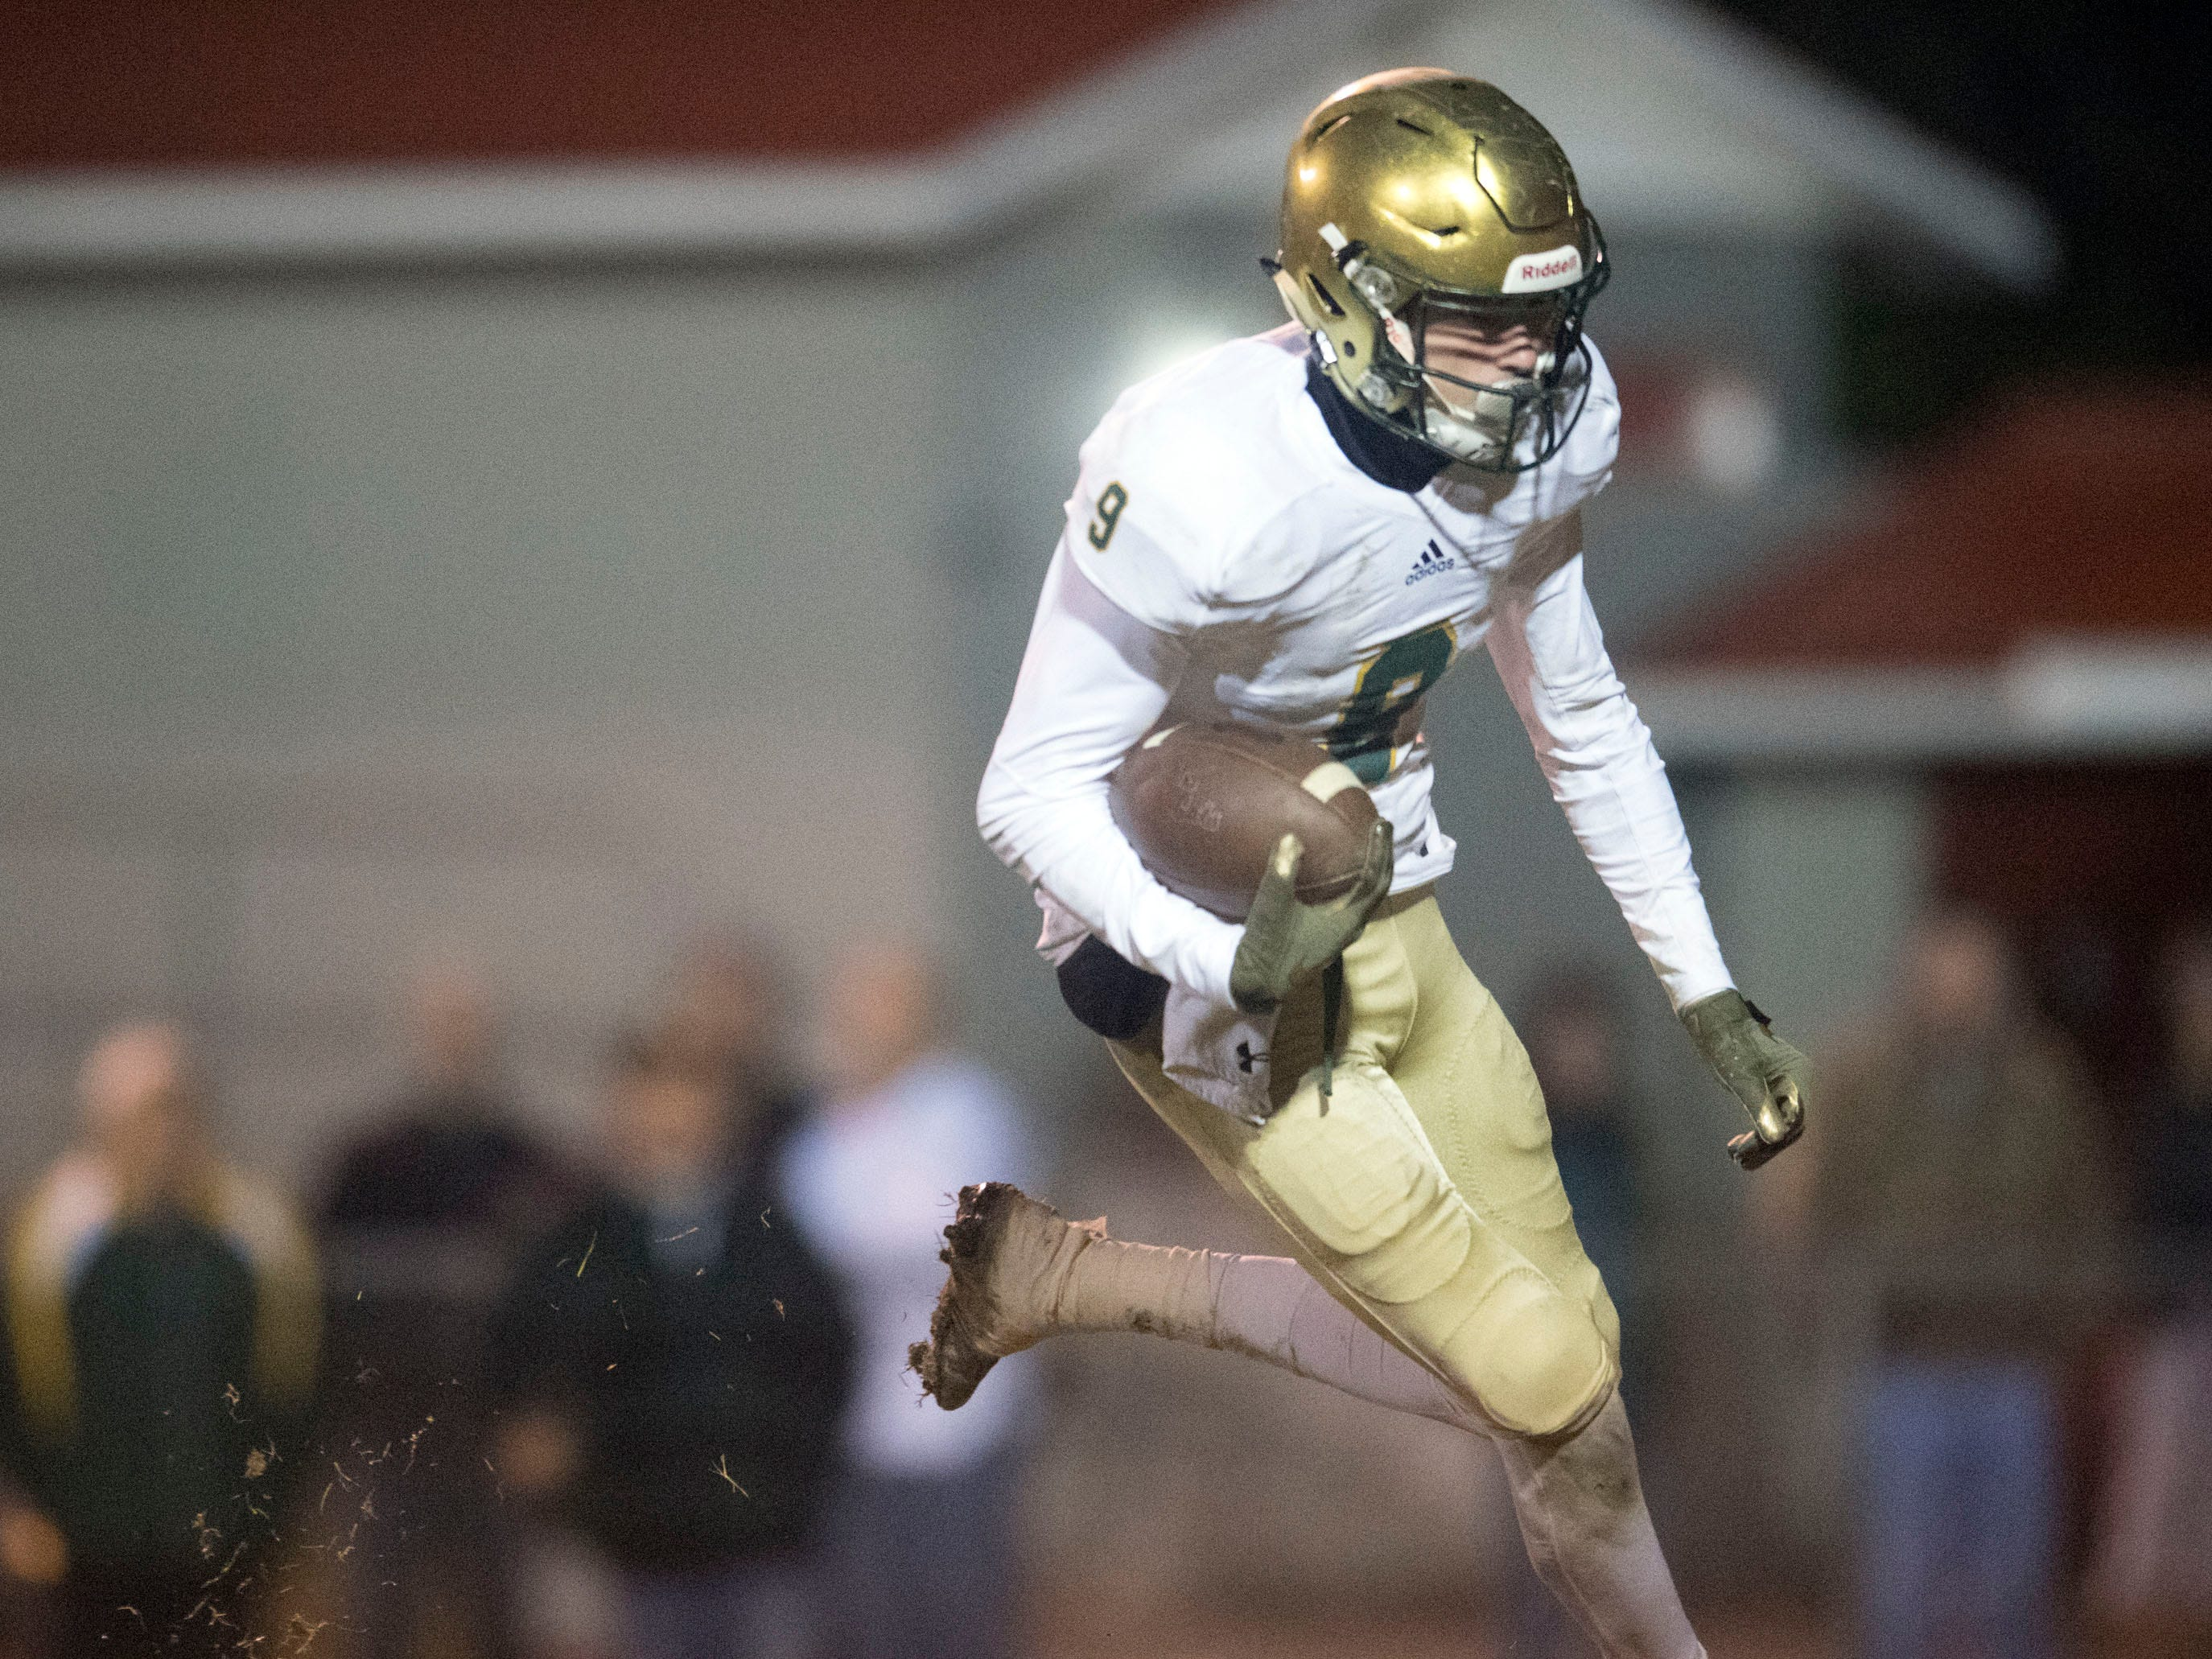 Knoxville Catholic's Adam Jones (9) on a touchdown run. Knoxville Catholic defeats Oak Ridge, 42-40 in the 5A quarterfinals on Friday, November 16, 2018.